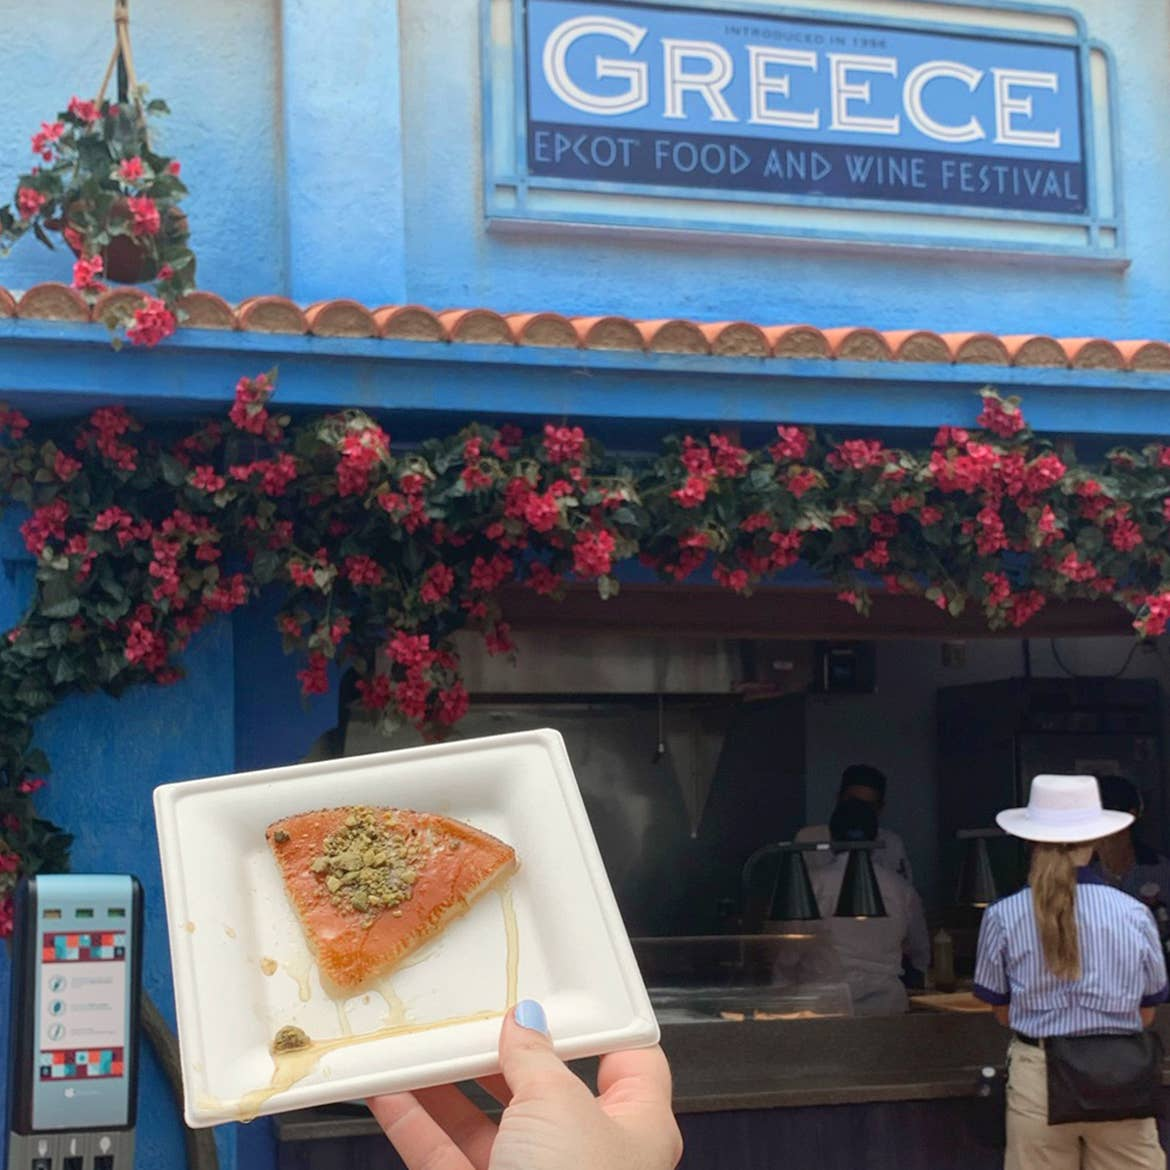 A hand holds a white, square plate containing a Griddled Cheese slice with Pistachios and Honey at the Greece kiosk at Epcot.